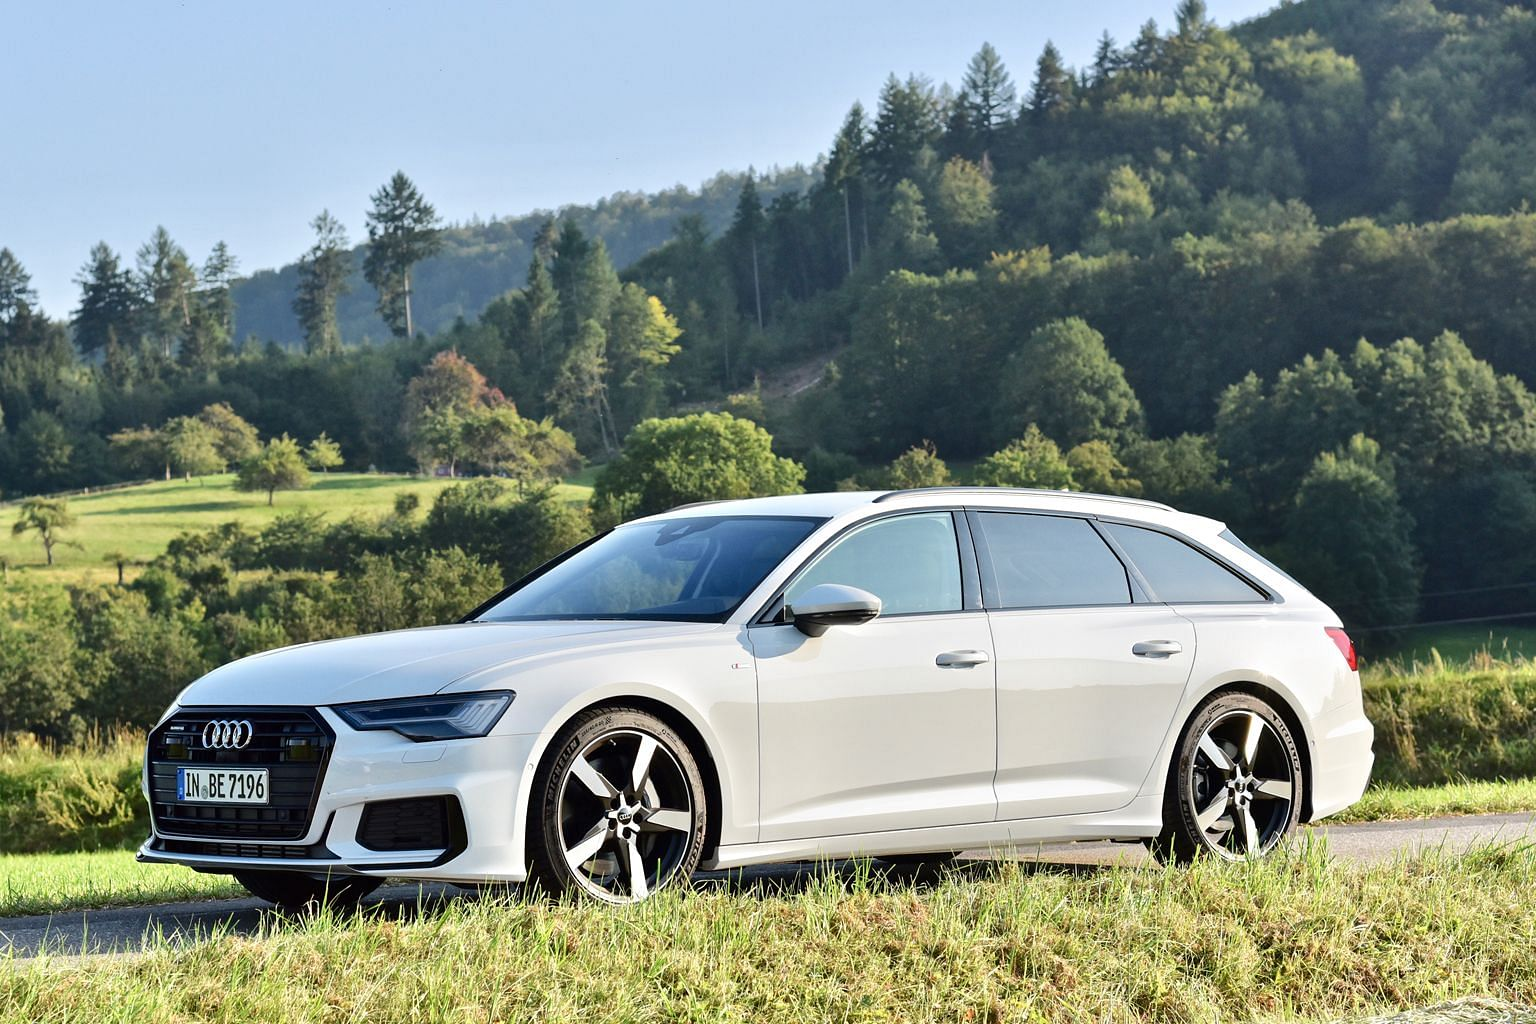 The Audi A6 Avant features three digitised screens in its cockpit and comes with new tech gizmos, including driving aids such as crossThe Audi A6 Avant is powered by a turbocharged 3-litre with a mild hybrid electrical system, producing 340hp and 500Nm.-t